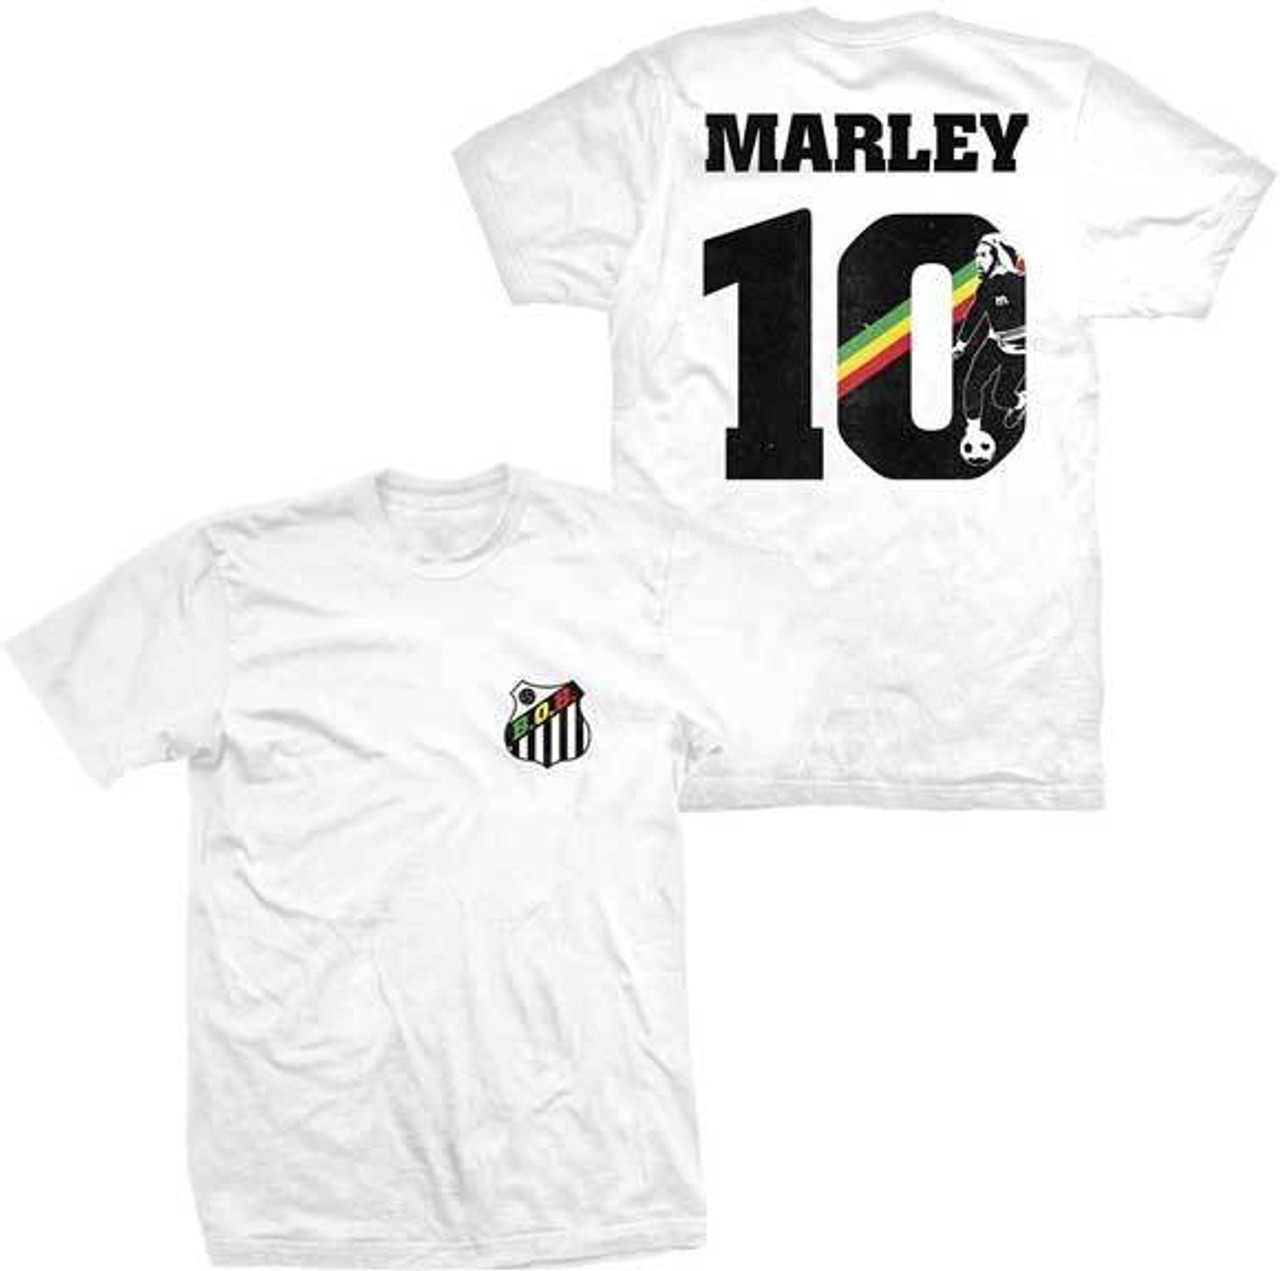 NEW RASTA HAIR BOB MARLEY LION COLORFUL T SHIRT REGGAE